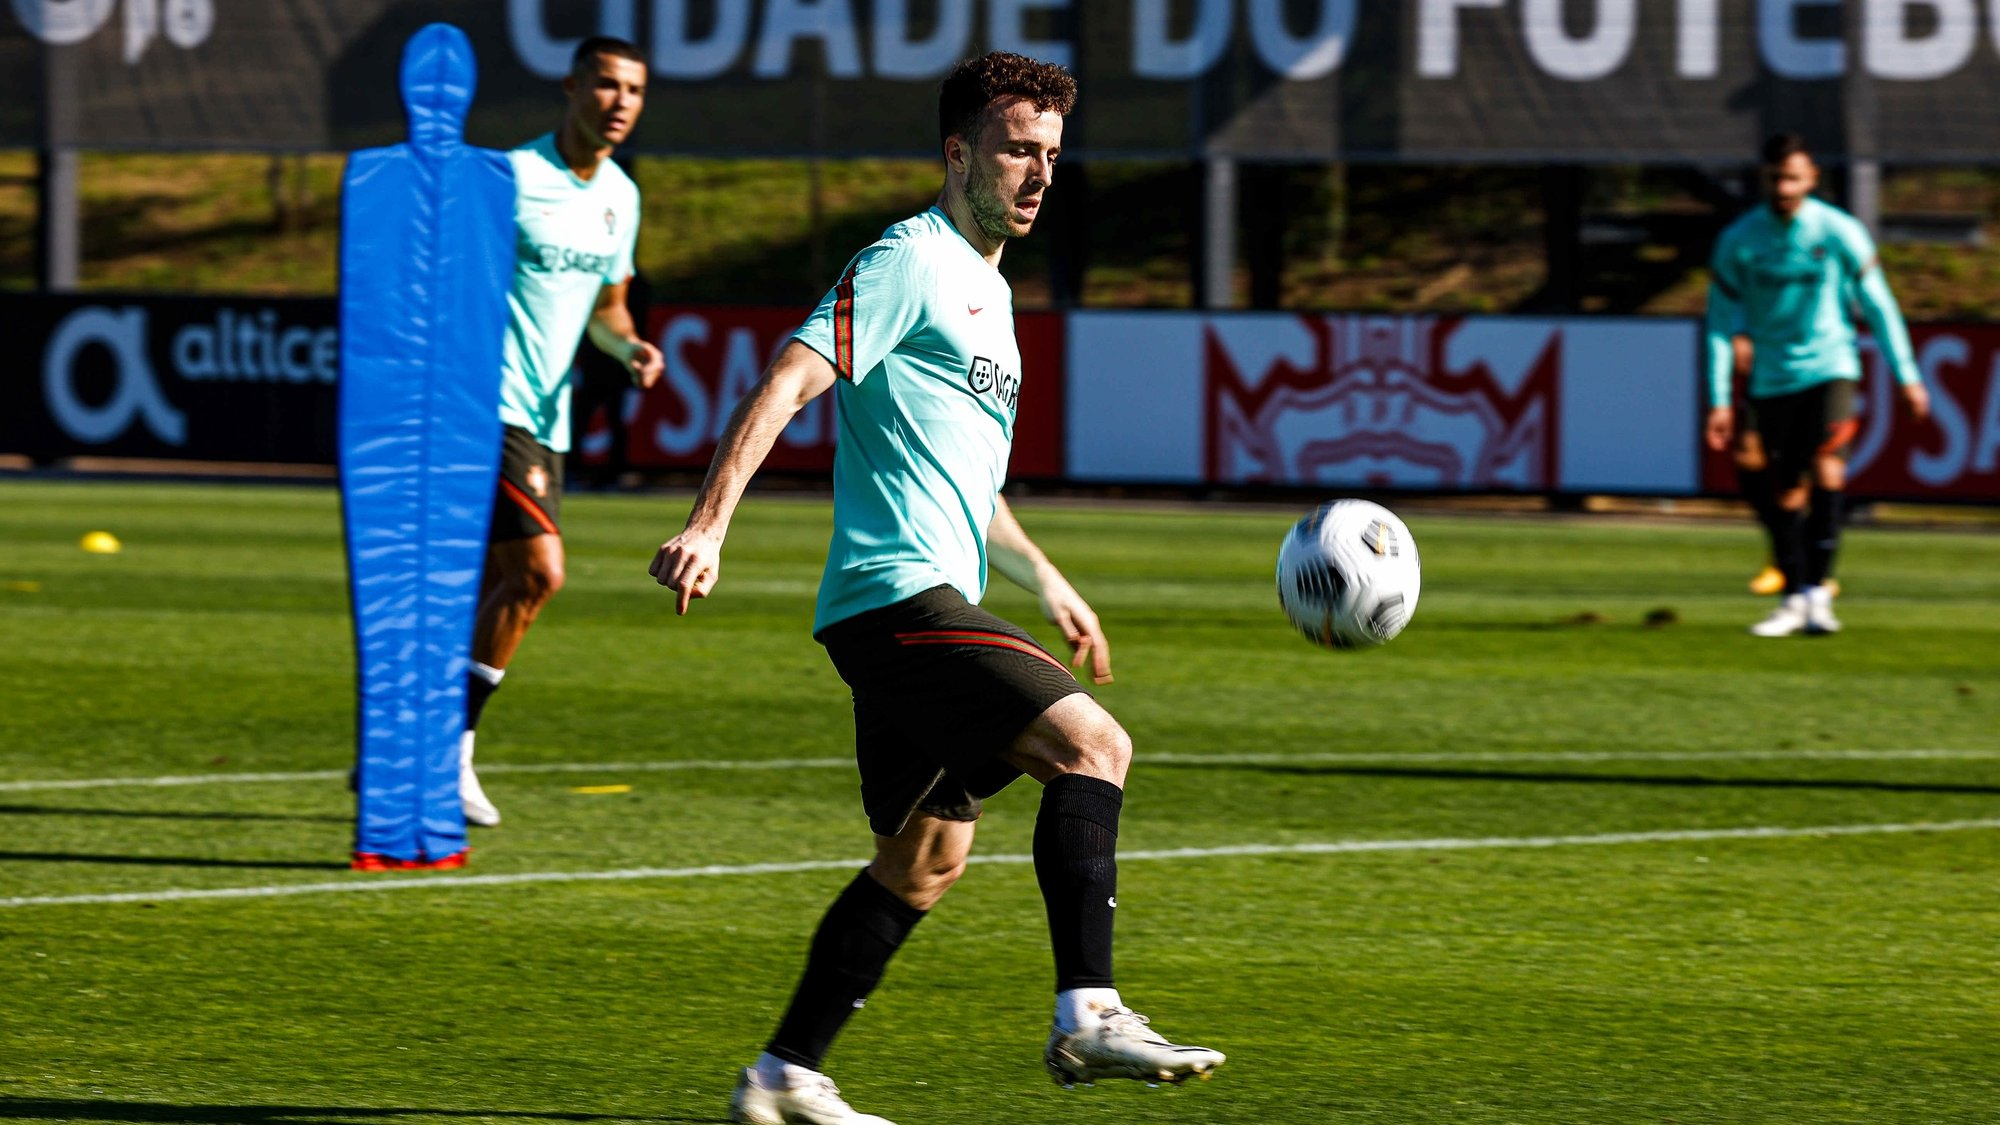 Portuguese Soccer Federation (FPF) handout picture of the Portuguese national soccer team player, Raphael Guerreiro, during a training session for the upcoming match with Andorra to be played tomorrow, Oeiras, Portugal, 10 November 2020.  DIOGO PINTO/FPF/LUSA